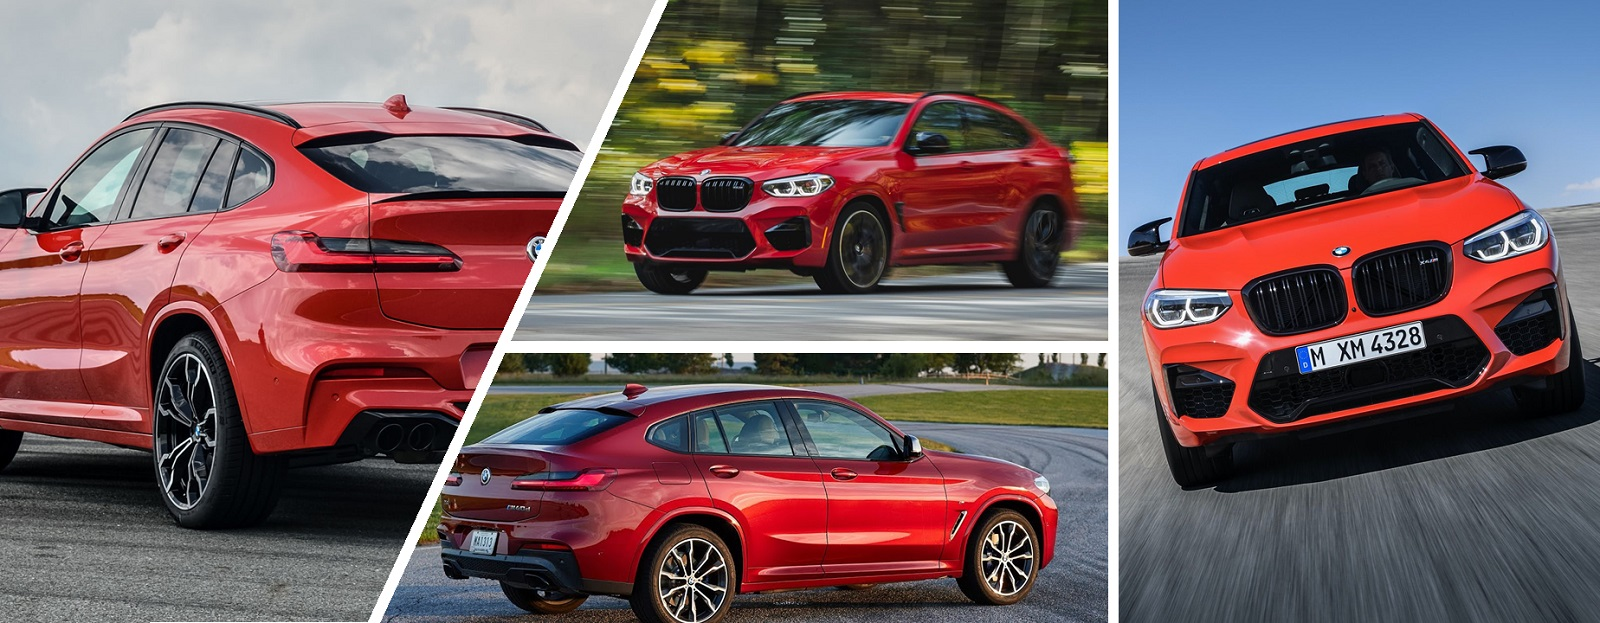 2020 BMW X4 M Exterior Design: front look, side look and back view